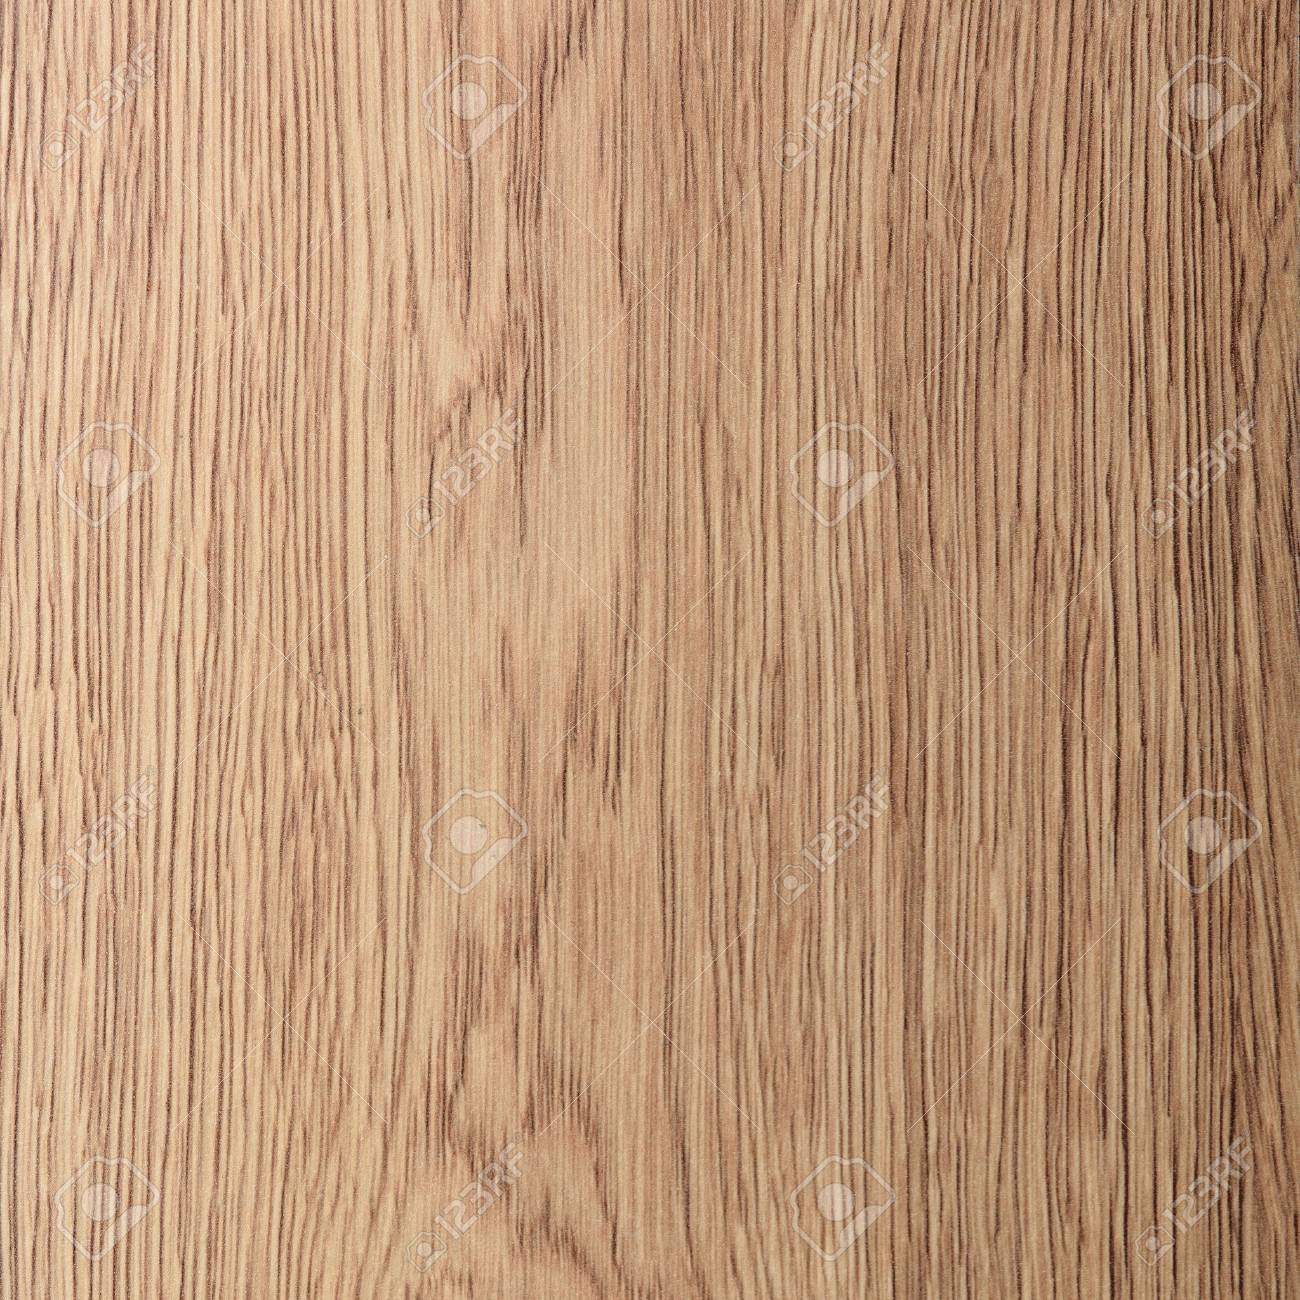 Outdoor Laminate Wood Texture Closeup Background Square Stock Photo    70400366